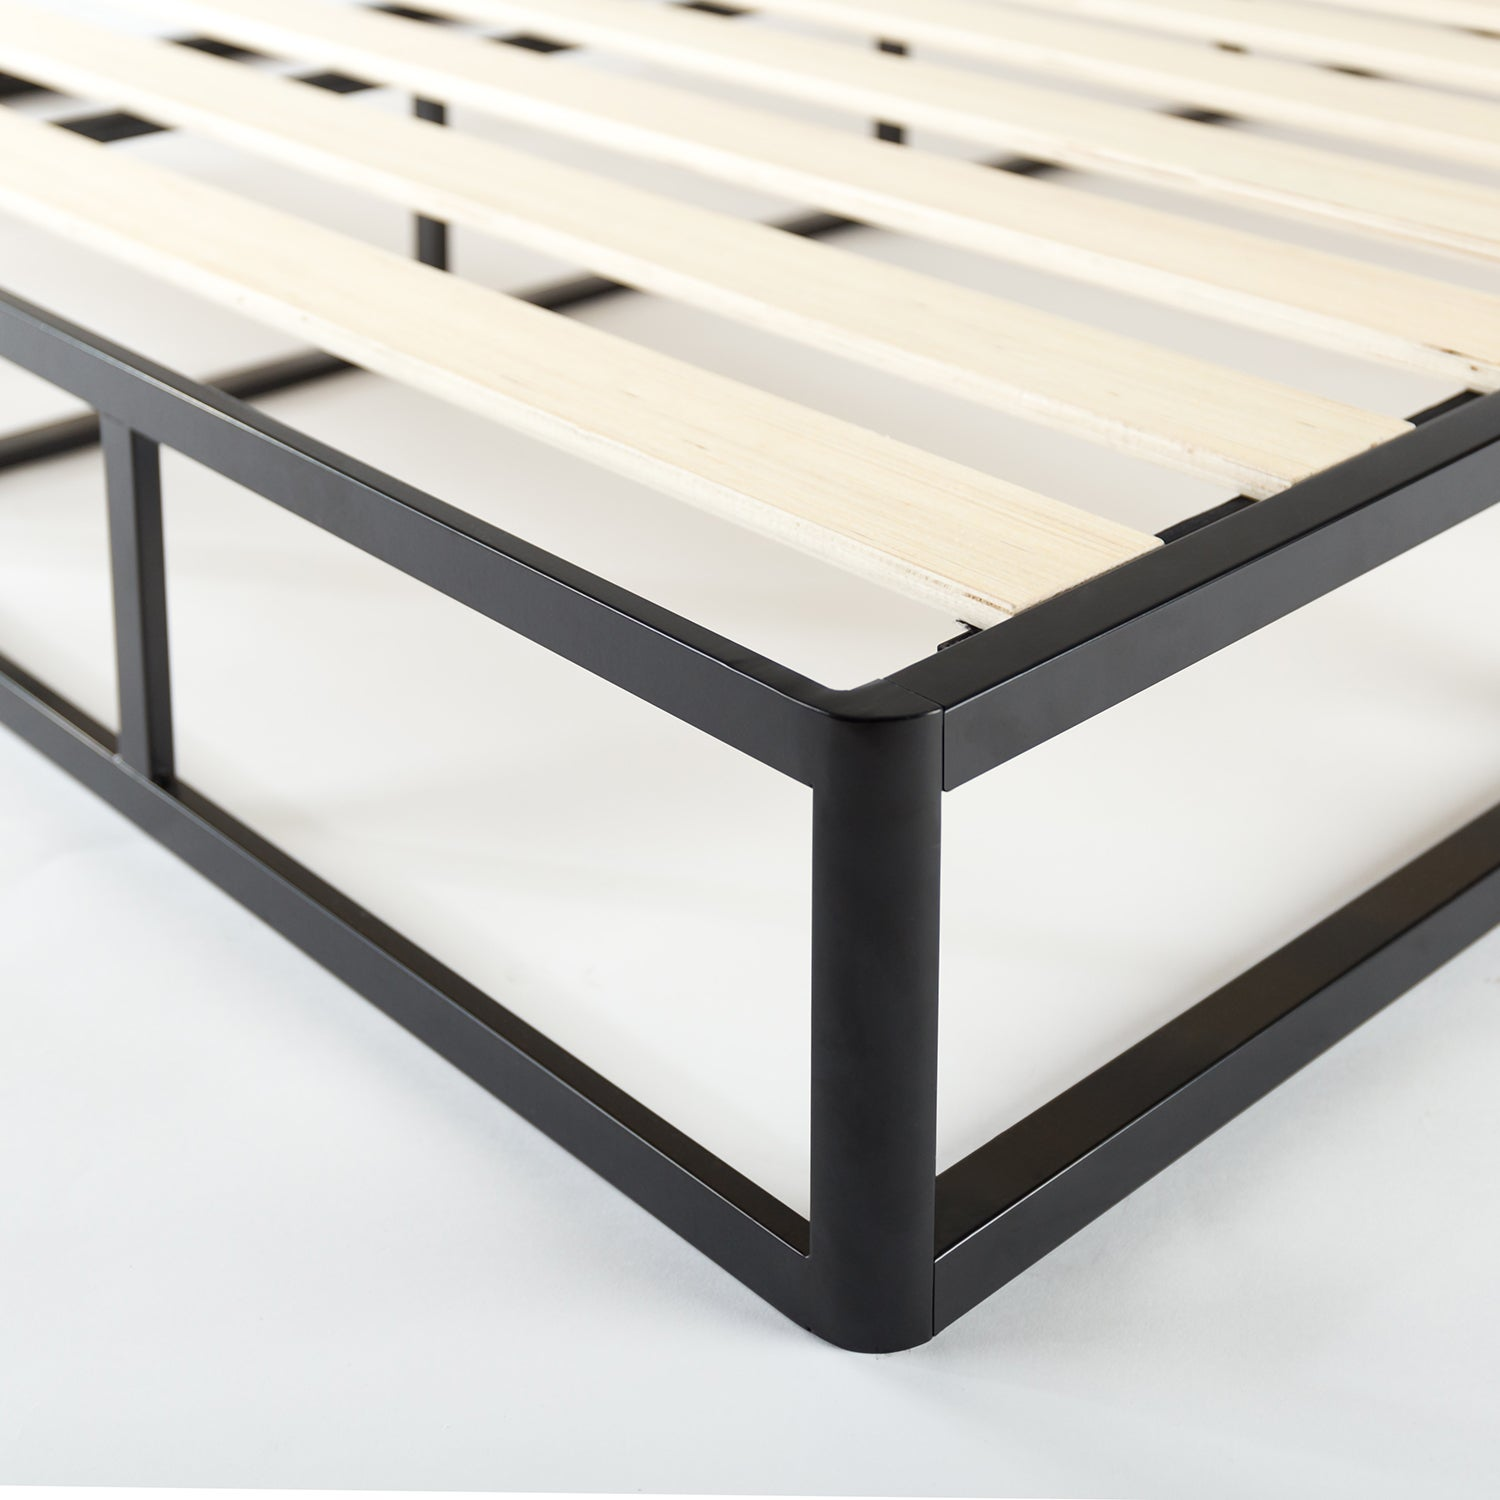 Shop Priage 9 Inch Smart Box Spring Mattress Foundation   Free Shipping  Today   Overstock.com   20689925